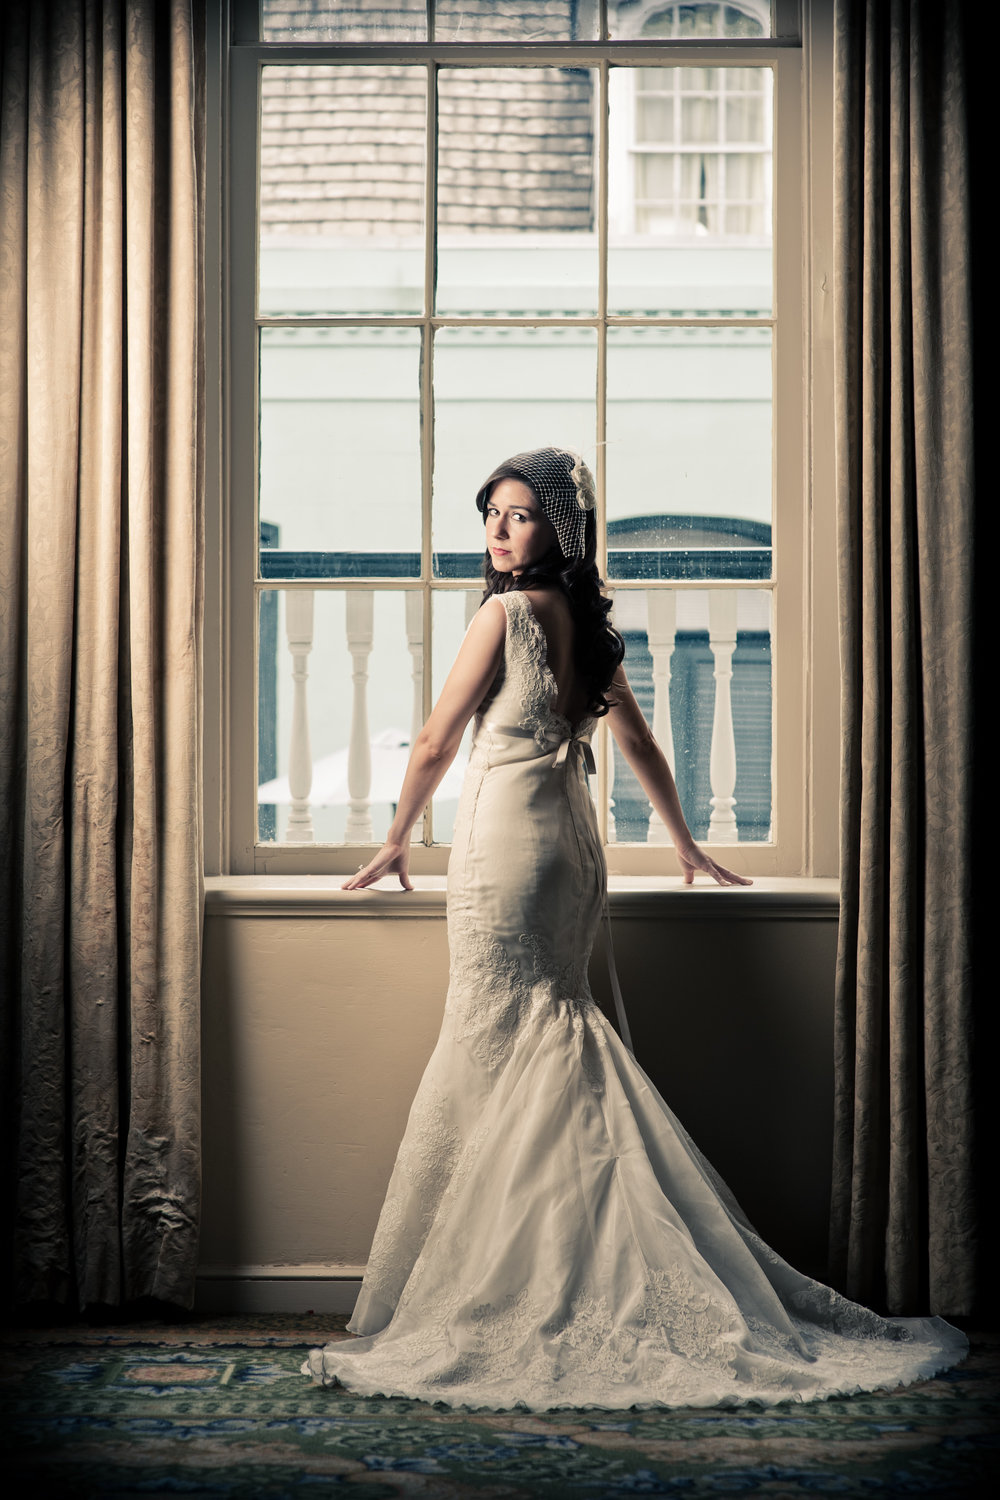 Bridal portrait at the Bourbon Orleans hotel, New Orleans